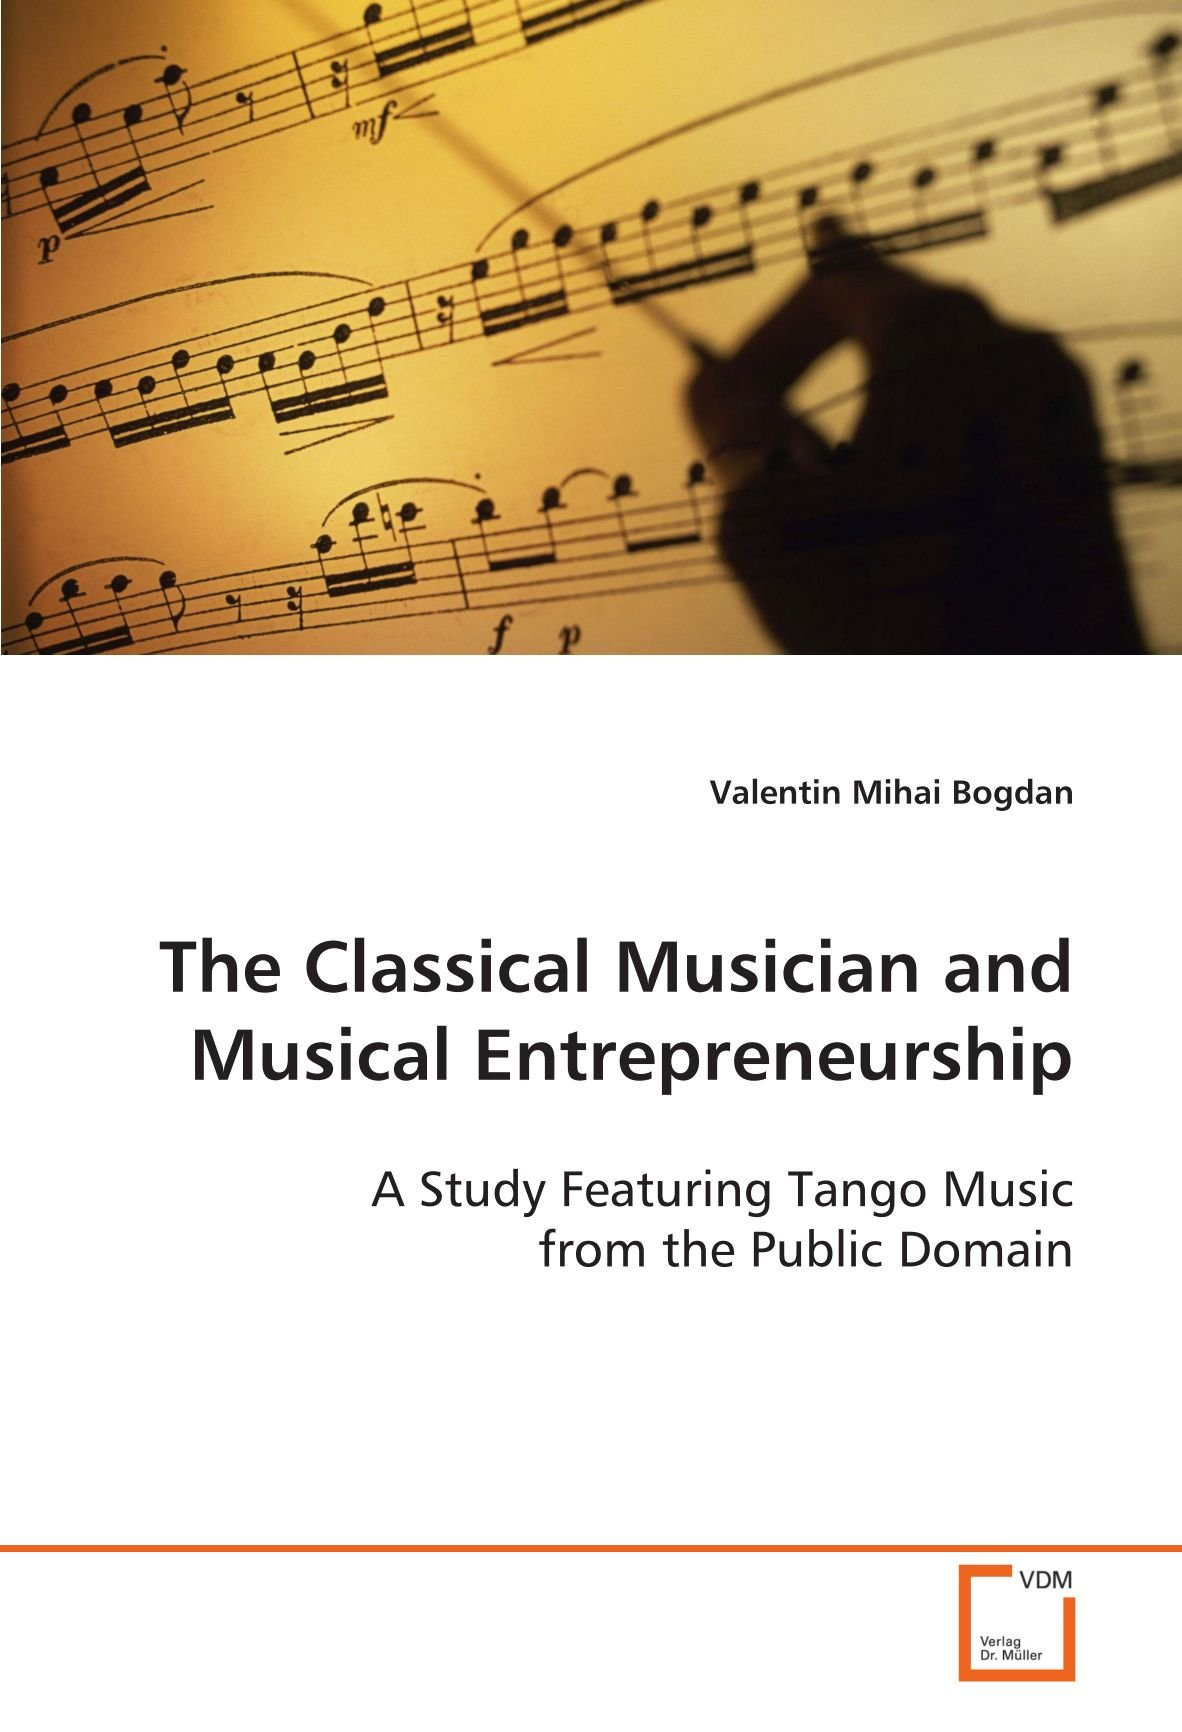 the-classical-musician-and-musical-entrepreneurship-a-study-featuring-tango-music-from-the-public-domain